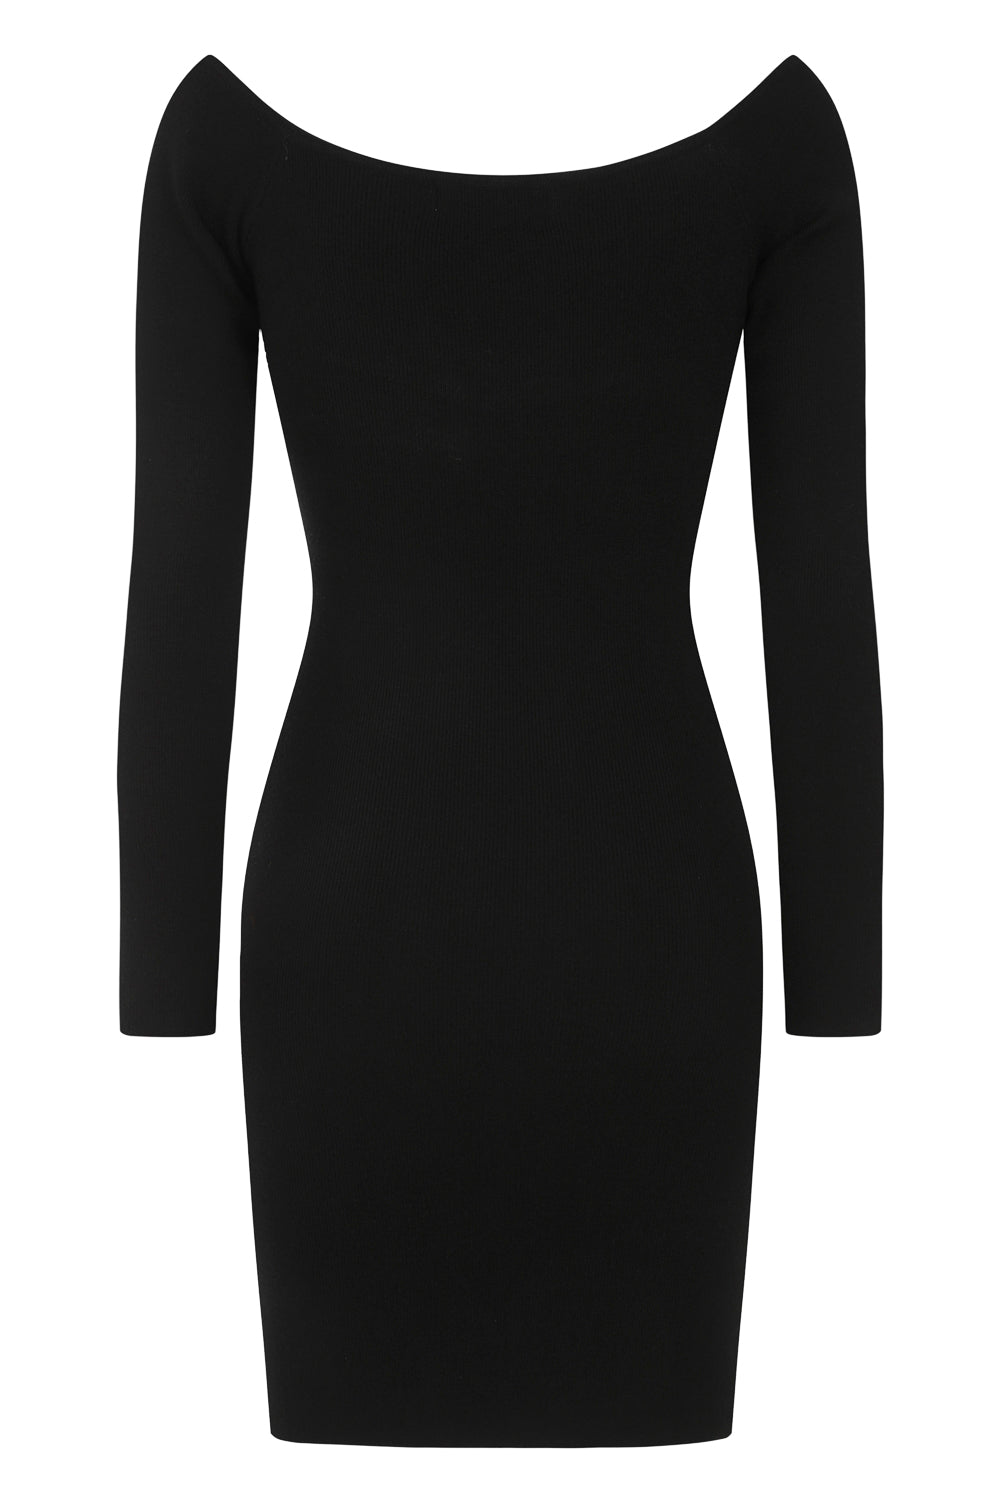 Precious Black Ruffle Ribbed Knitted Bodycon Long Sleeve Dress